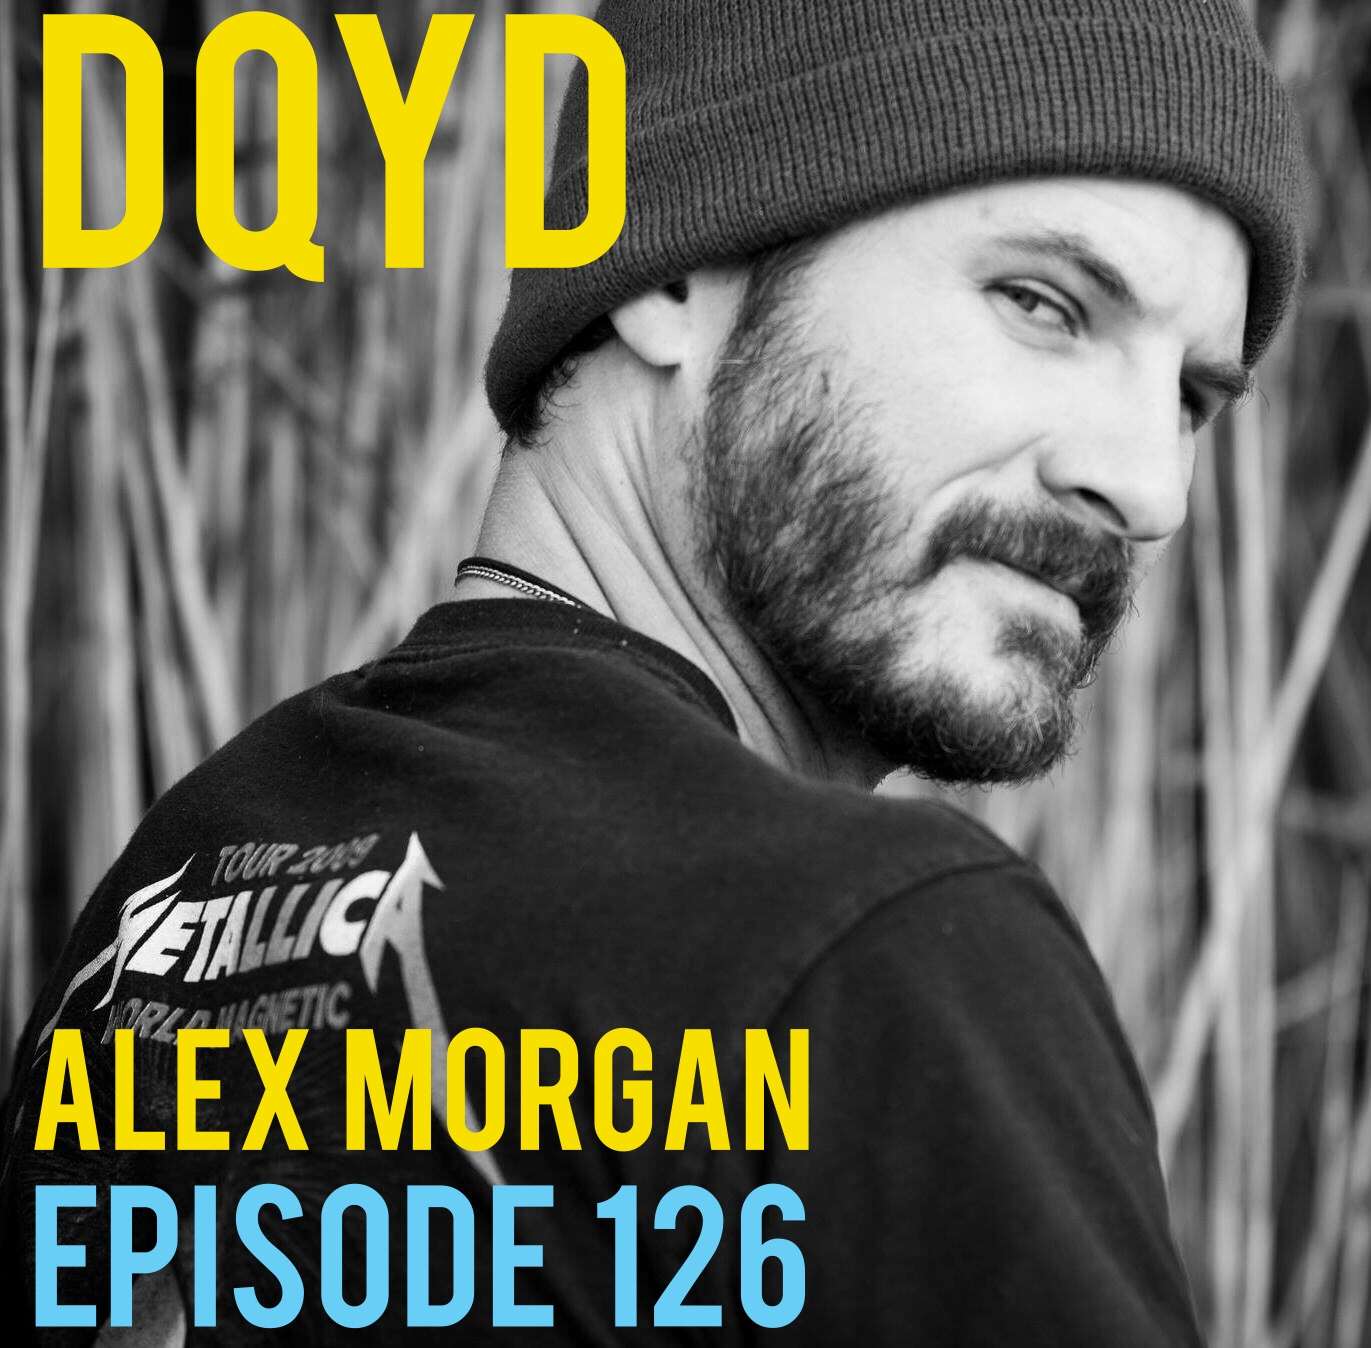 Episode 126 with Photographer: Alex Morgan! Making a name for himself taking photos for different bands in the music industry, Alex has made a living doing what he loves. We discuss the fears of going into business for yourself, sacrificing for just the possibility of an opportunity and how to market yourself once you get the proverbial ball rolling. Take a moment to listen to Alex's phenomenal stories and you'll wish he had a podcast of his very own.